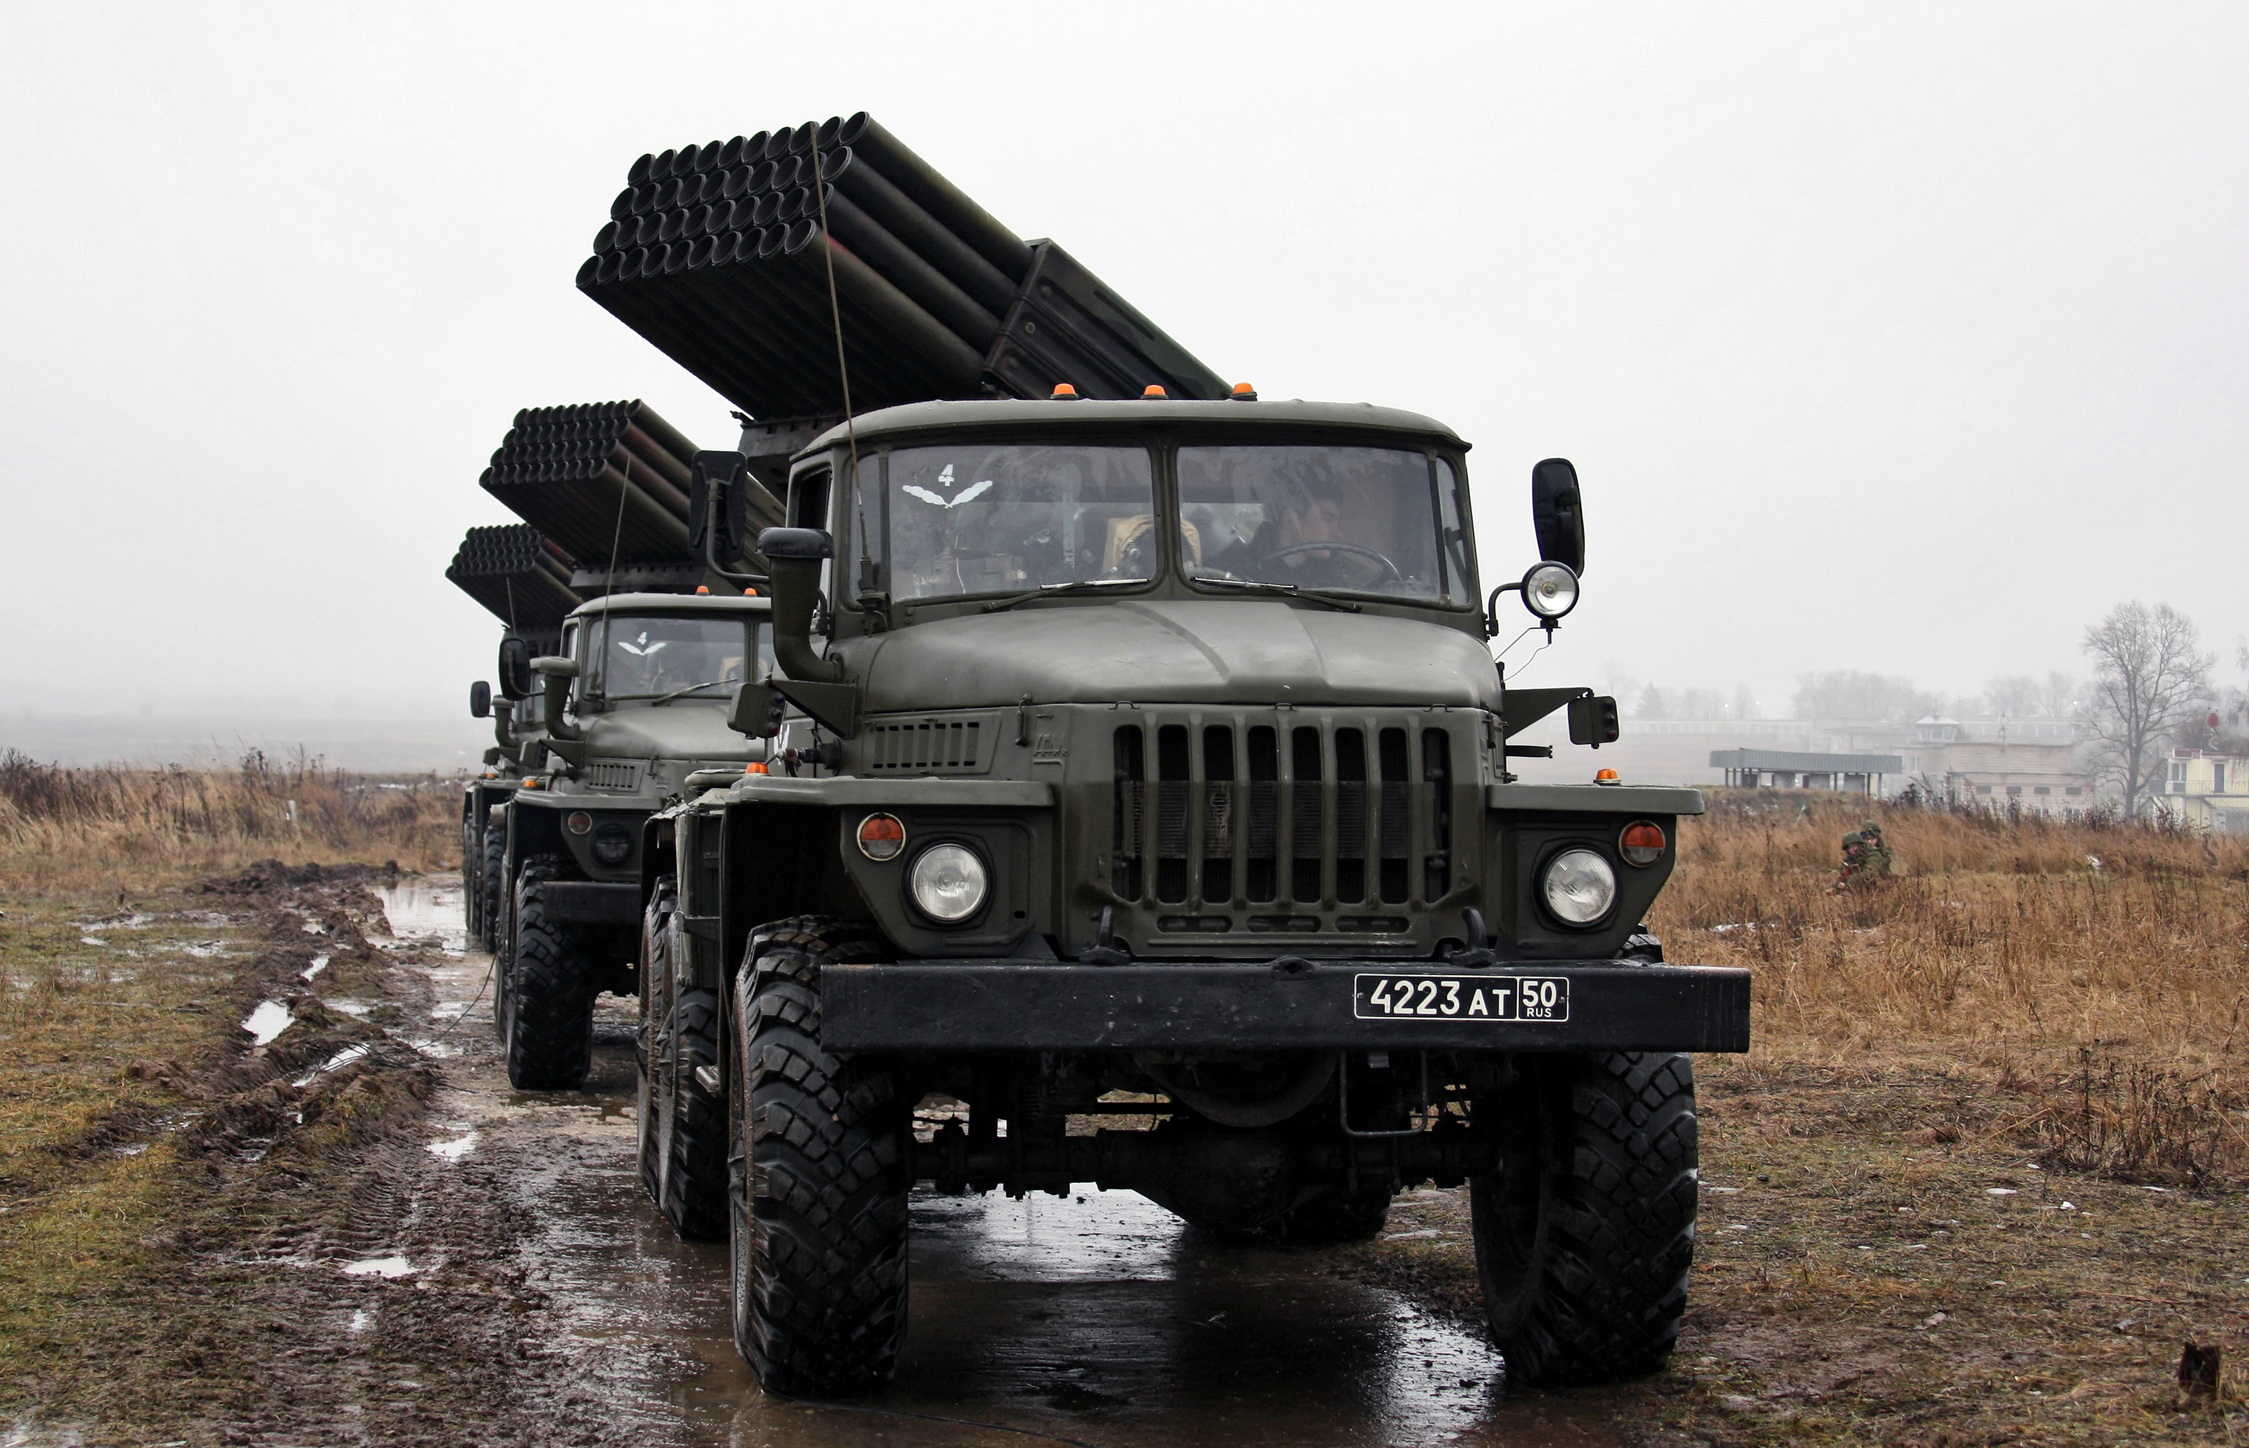 The BM-21 Multiple Rocket Launcher